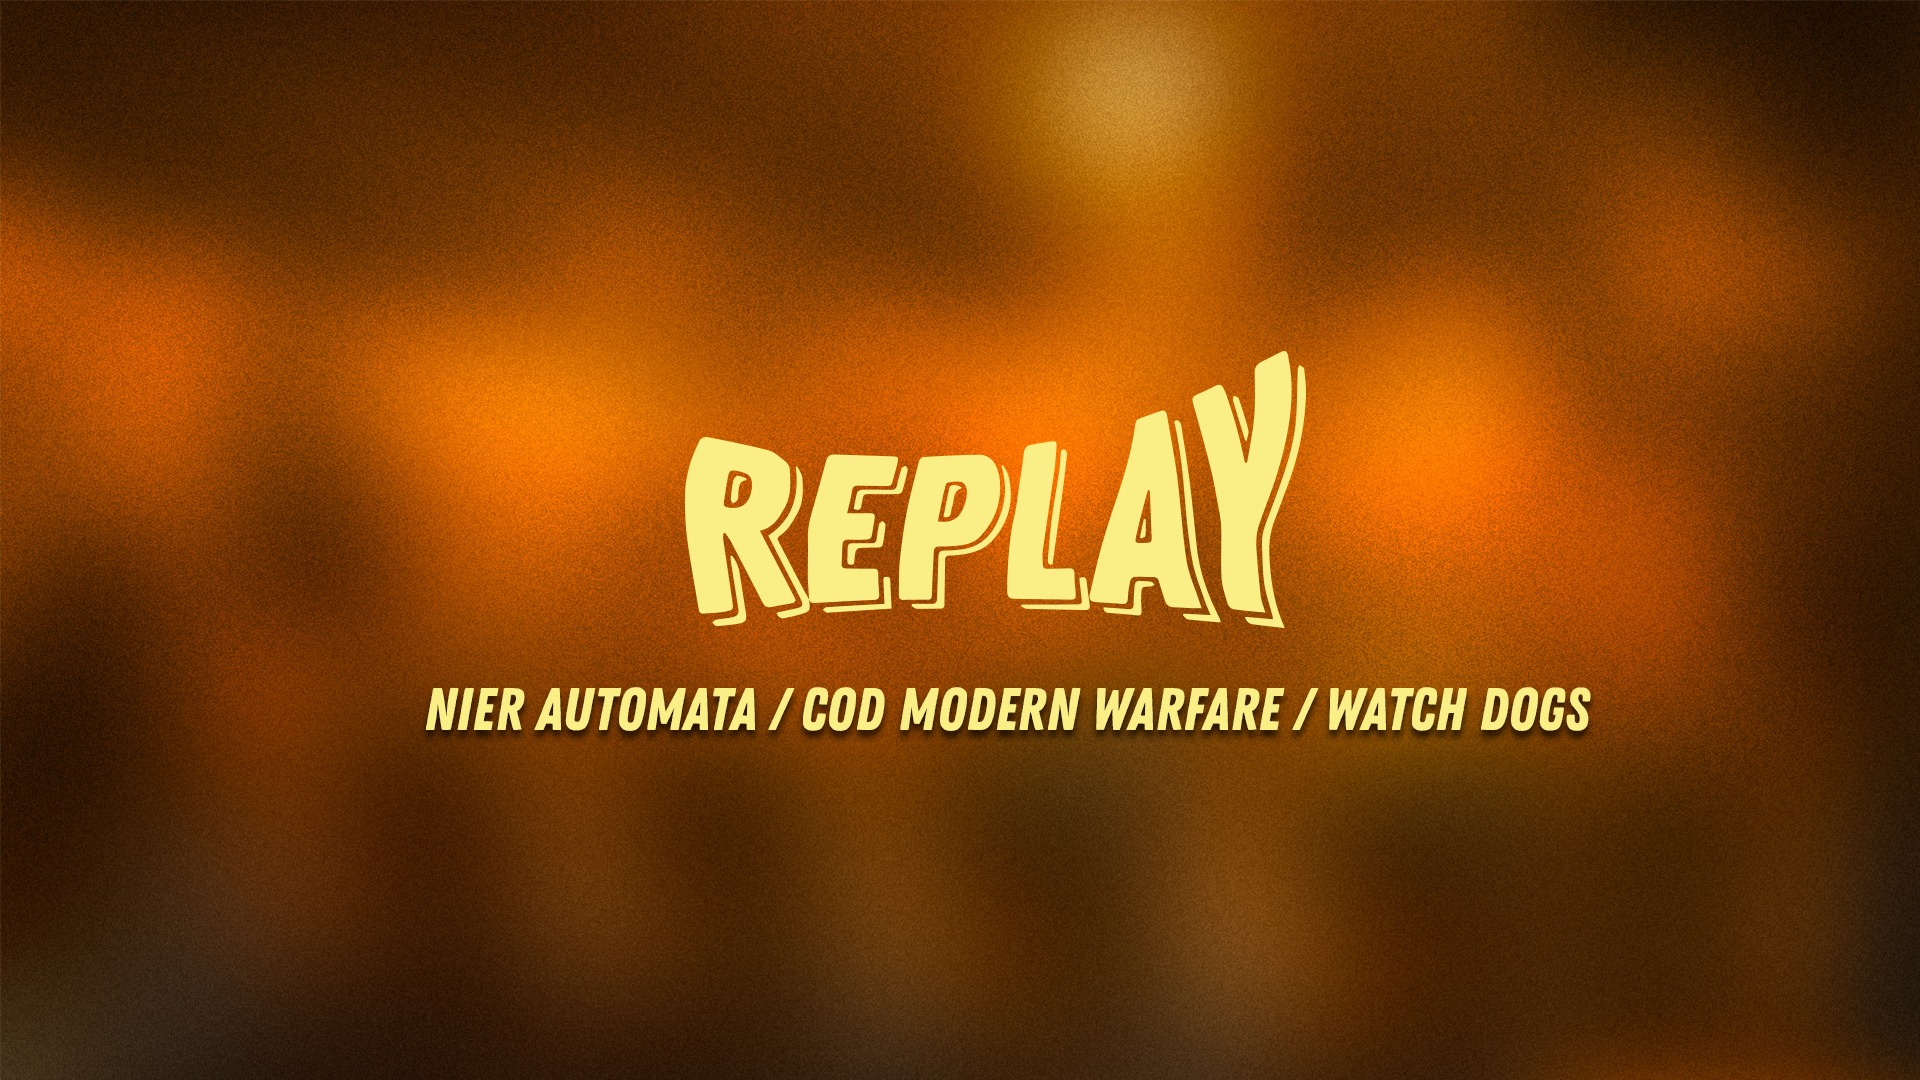 Replay #11 : Watch Dogs/NieR Automata/Modern Warfare